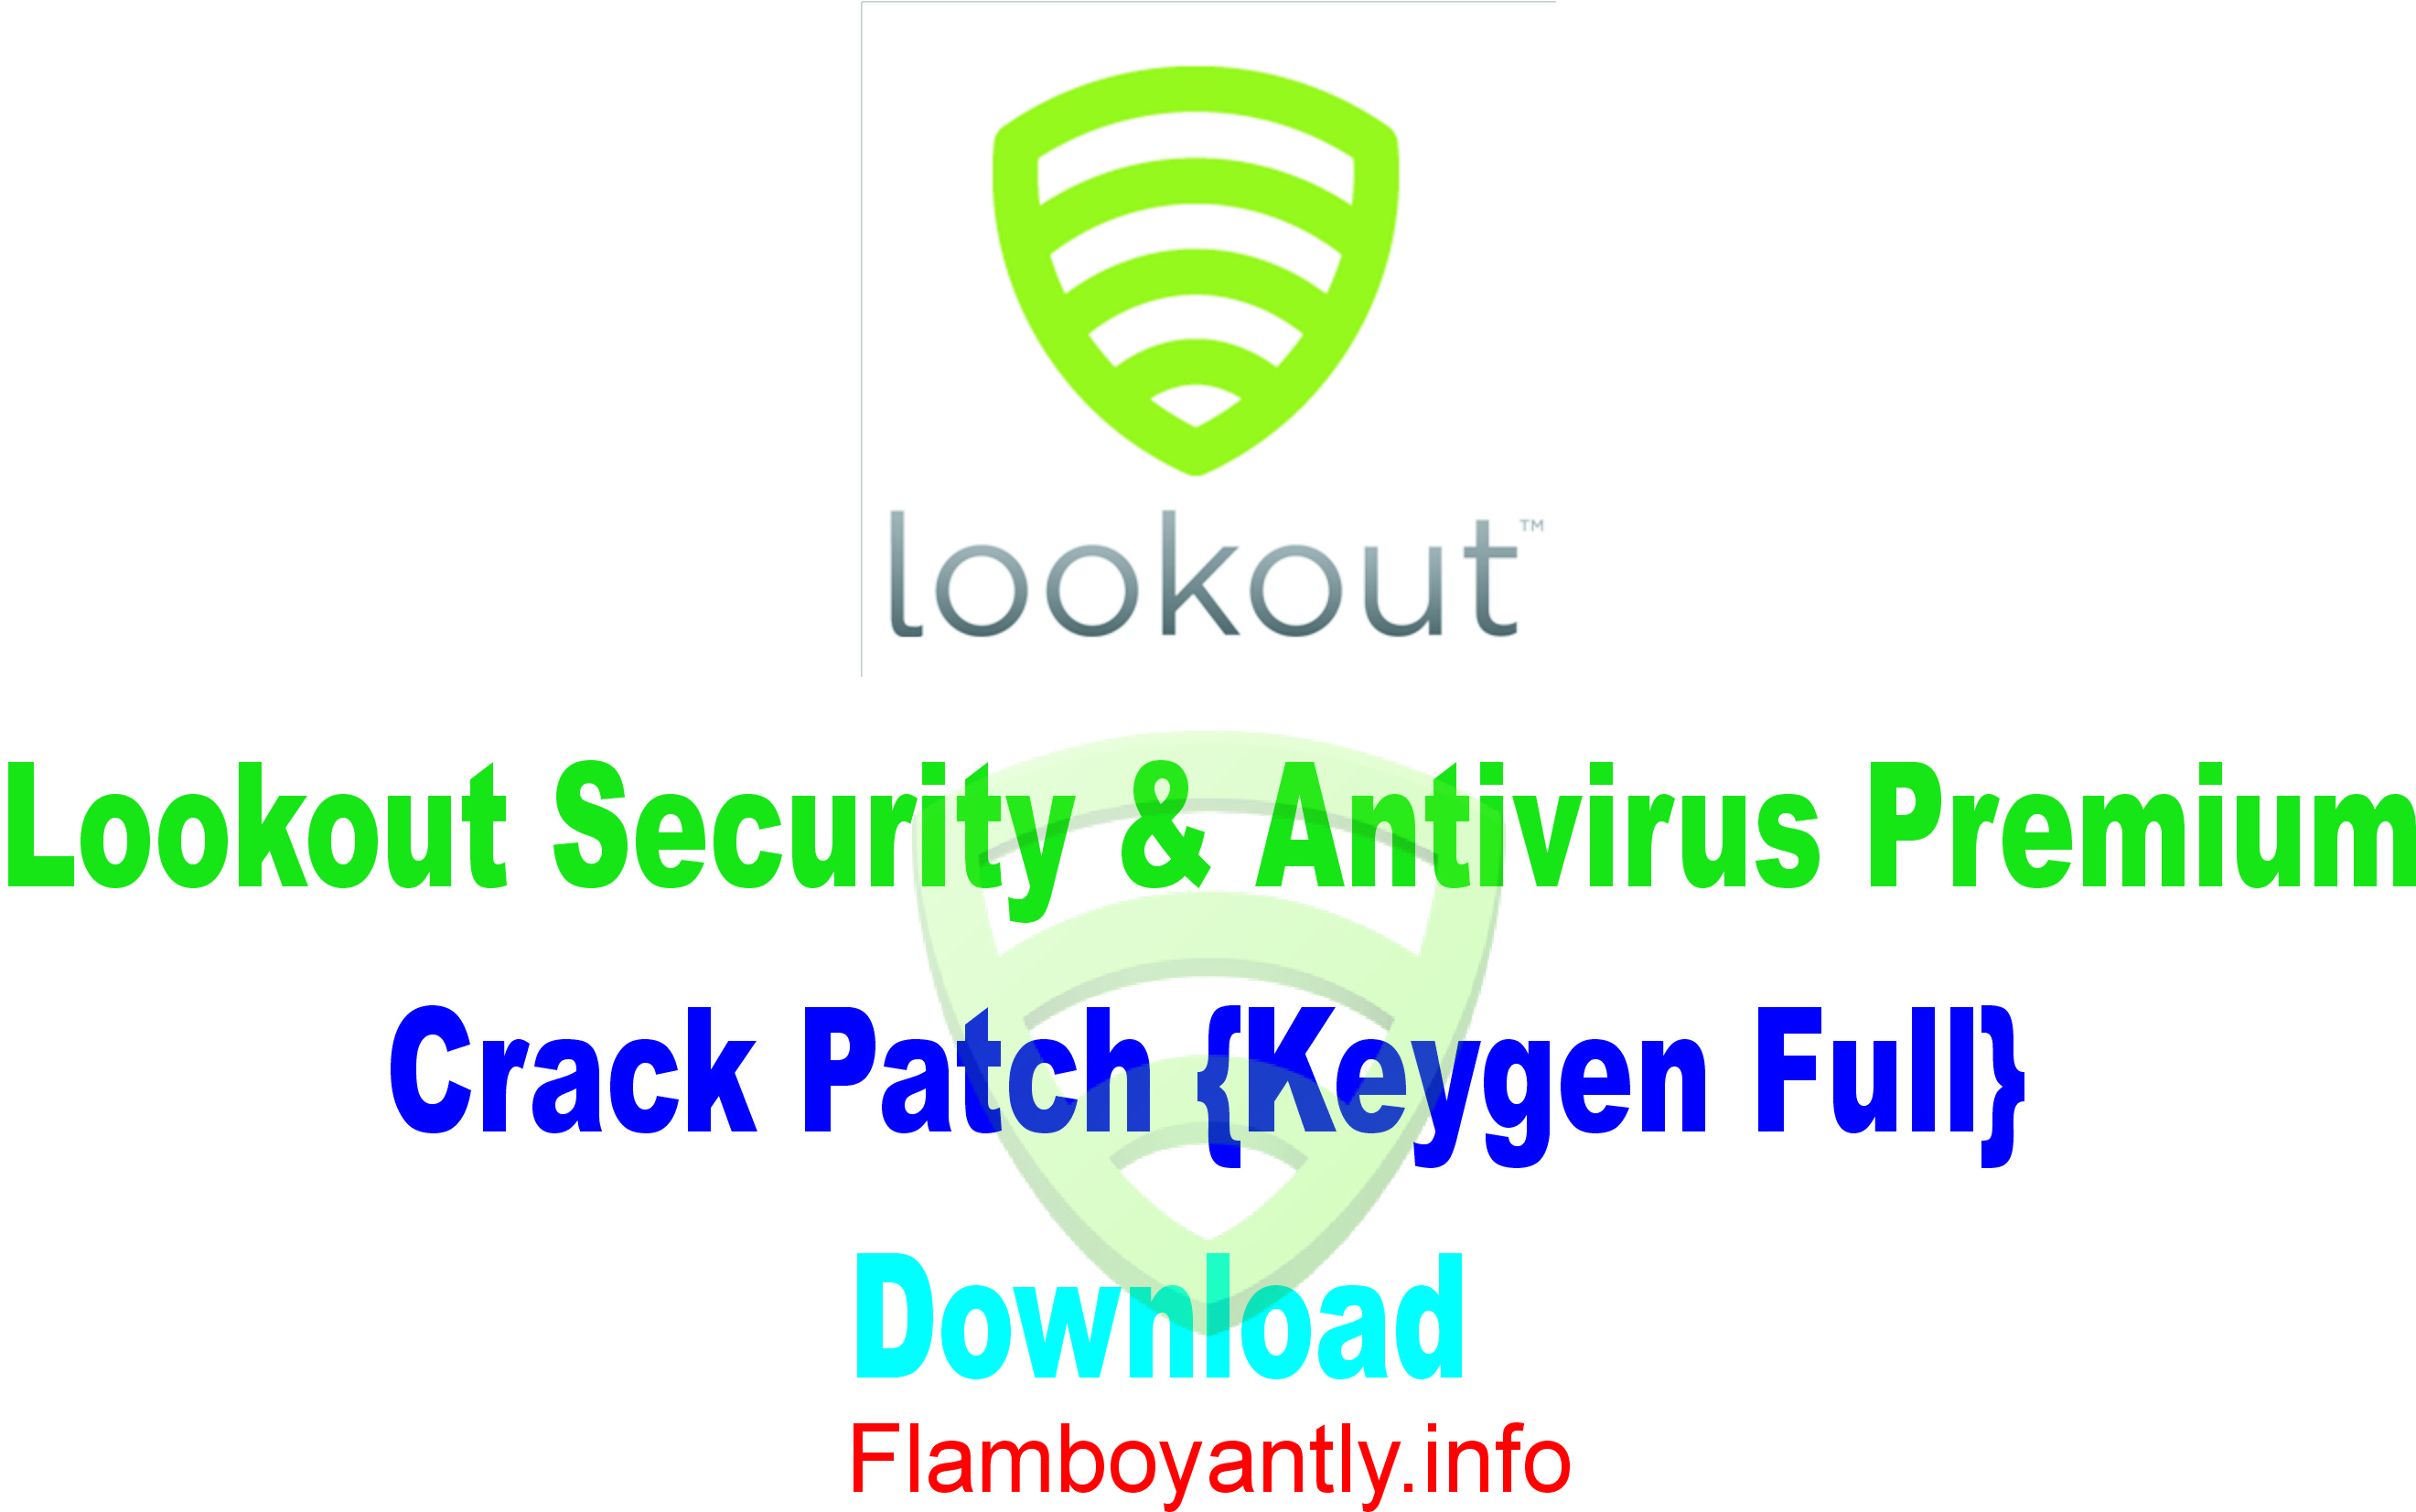 Lookout Security & Antivirus Premium Crack Patch {Keygen Full} Download